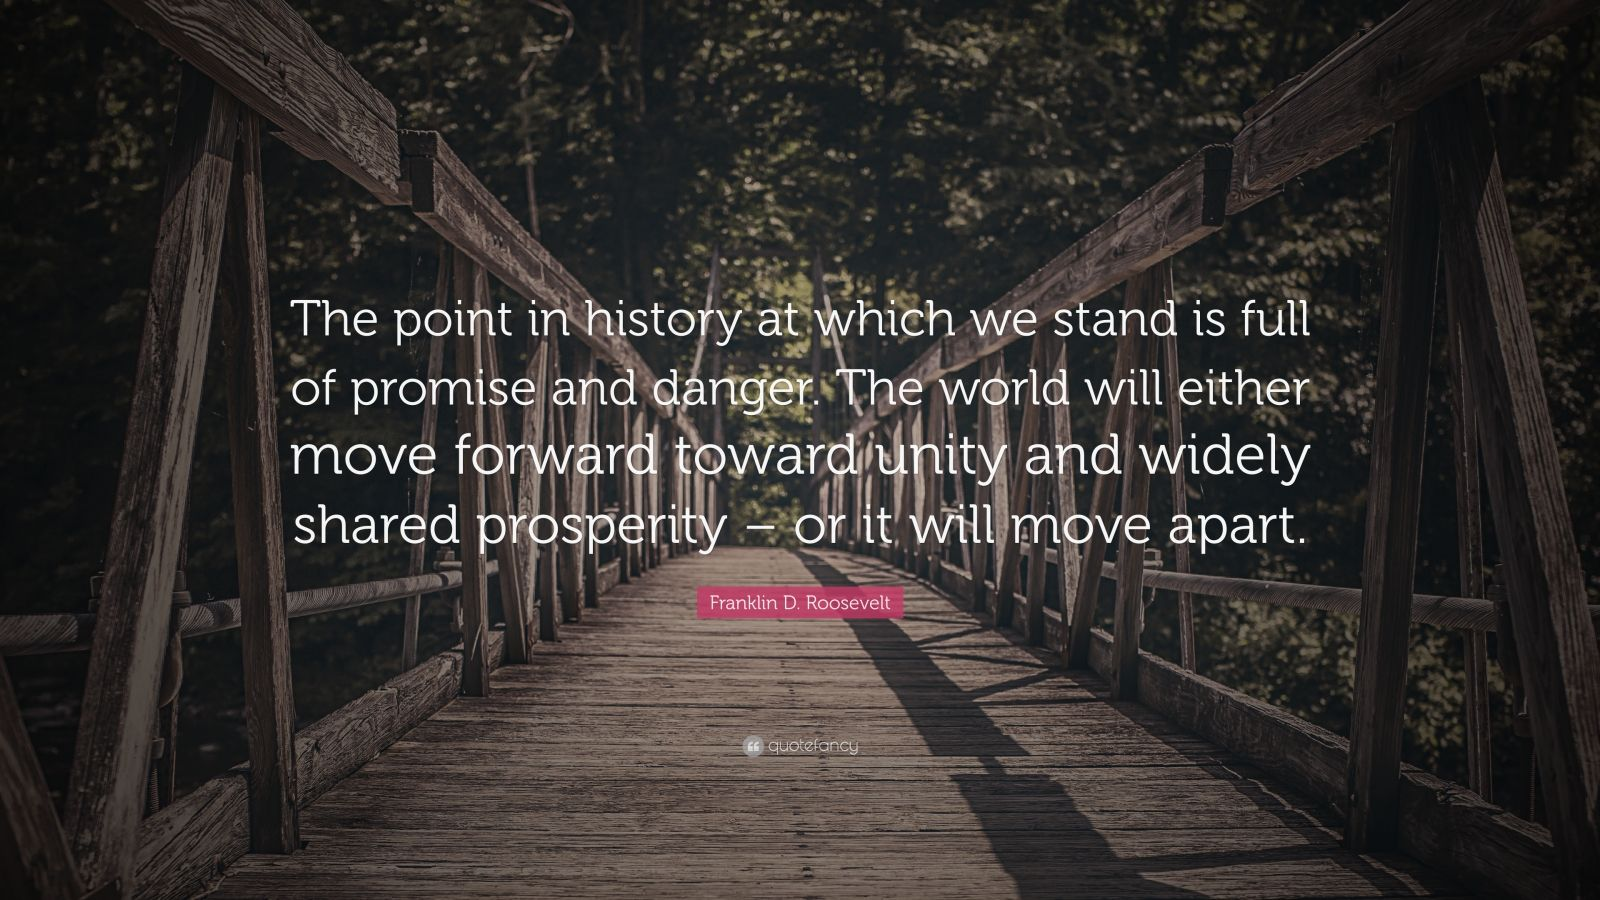 """Franklin D. Roosevelt Quote: """"The point in history at which we stand is full of promise and danger. The world will either move forward toward unity and widely shared prosperity – or it will move apart."""""""